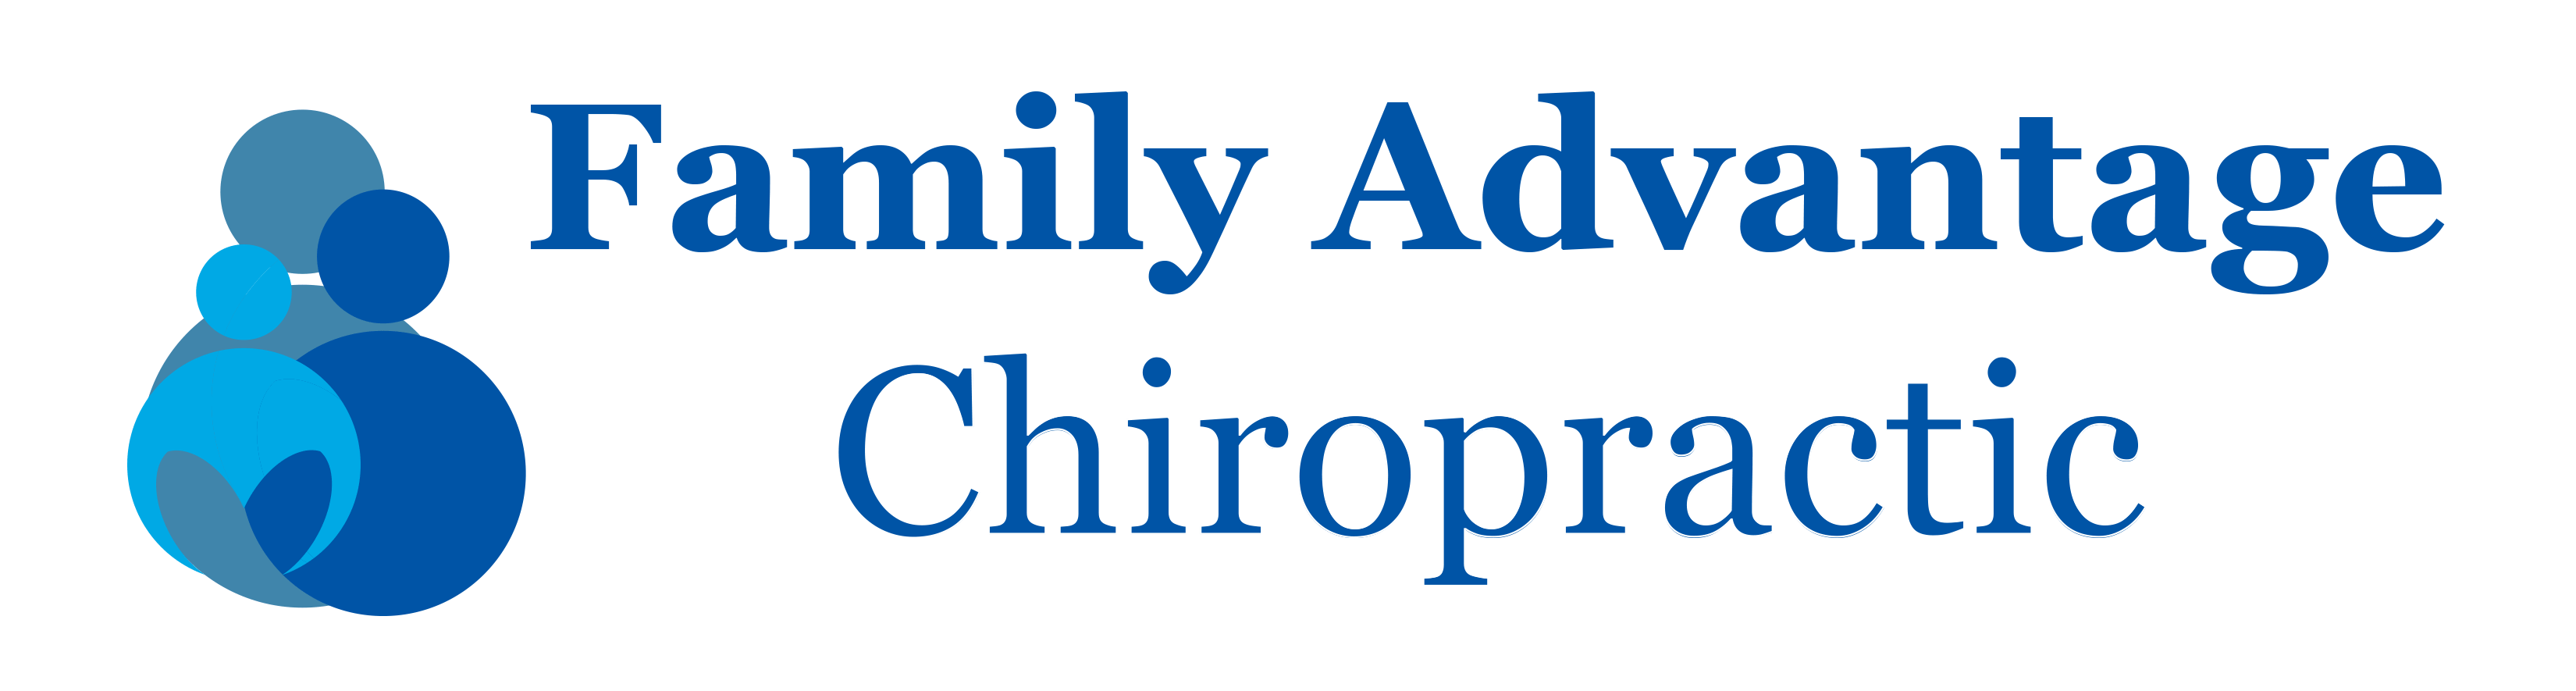 Family Advantage Chiropractic